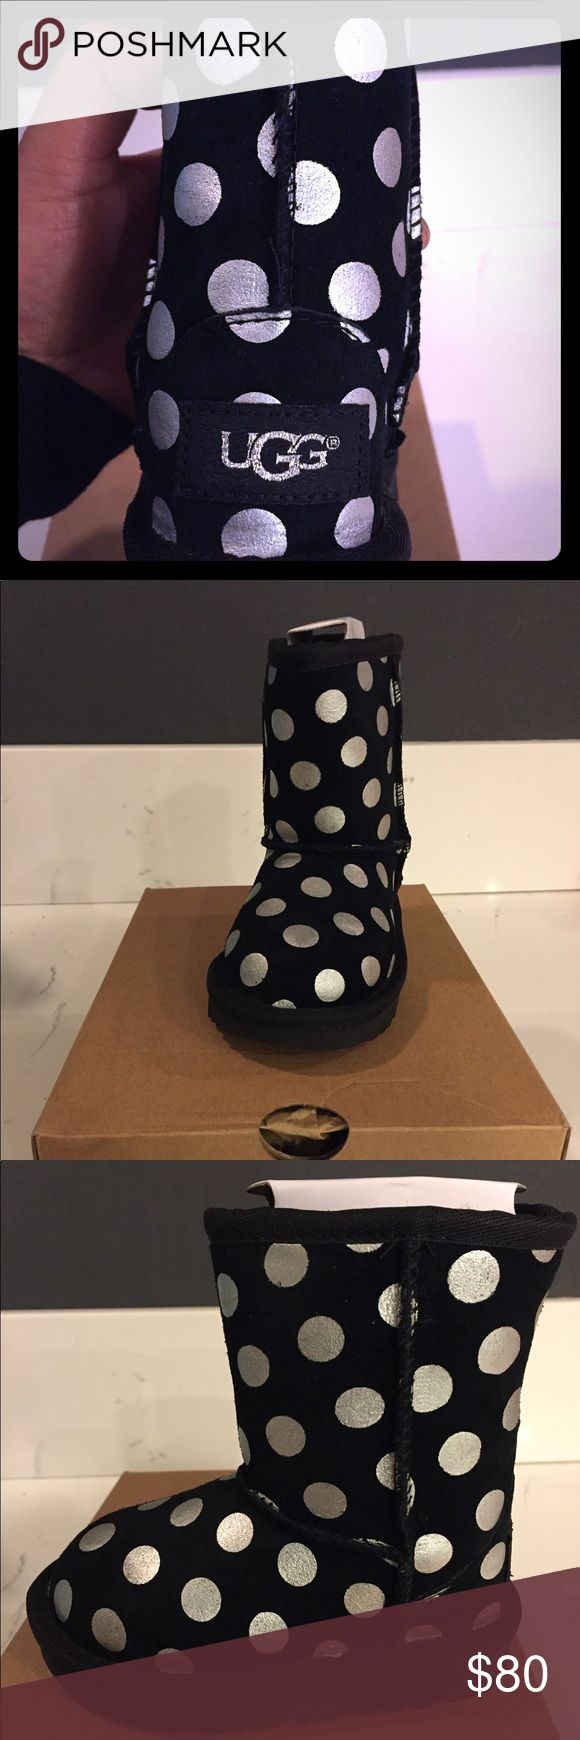 Toddler girl UGG boots silver polka dot Sz 6 NIB Gorgeous little baby girl Uggs. These boots are black with silver polka dots all around. New in box size 6 toddler. Purchased at Nordstrom's. UGG Shoes Boots